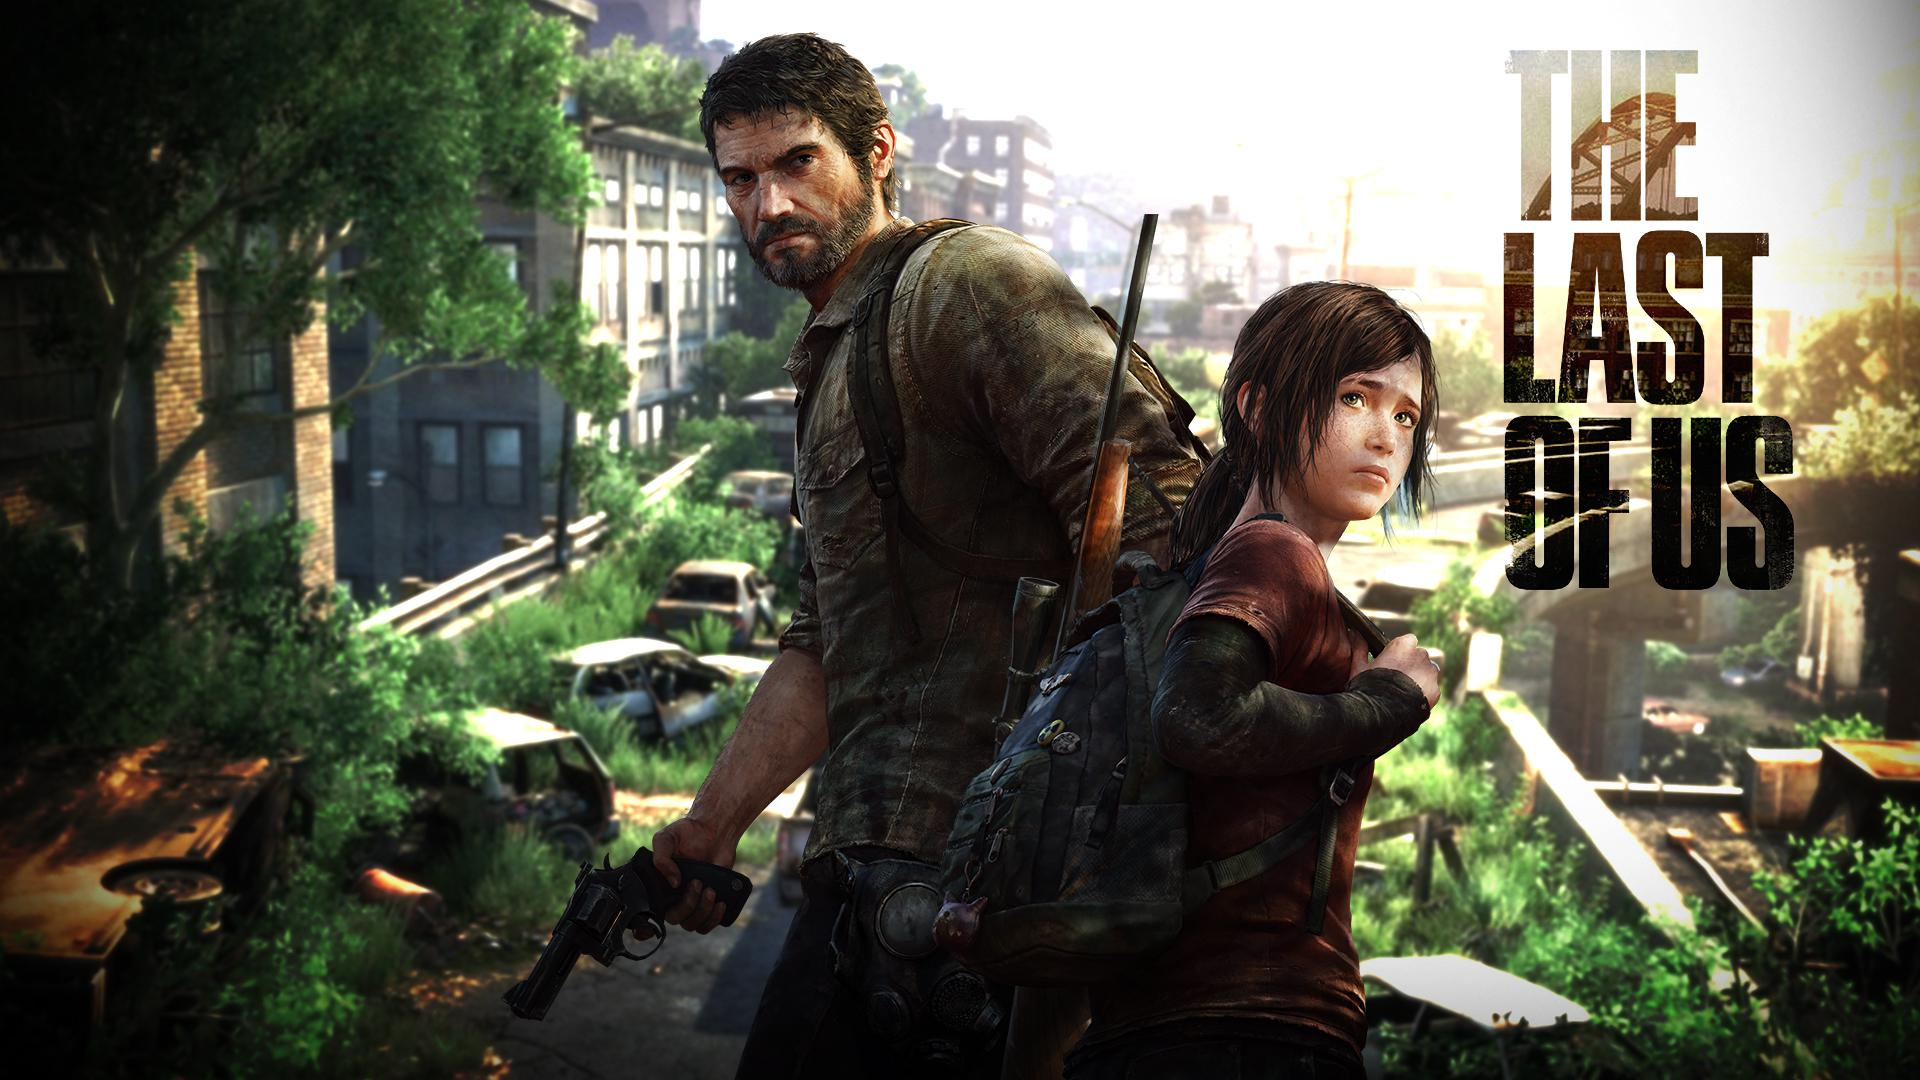 Ps4 The Last Of Us Hd Trofeos Y Logros Comunidad